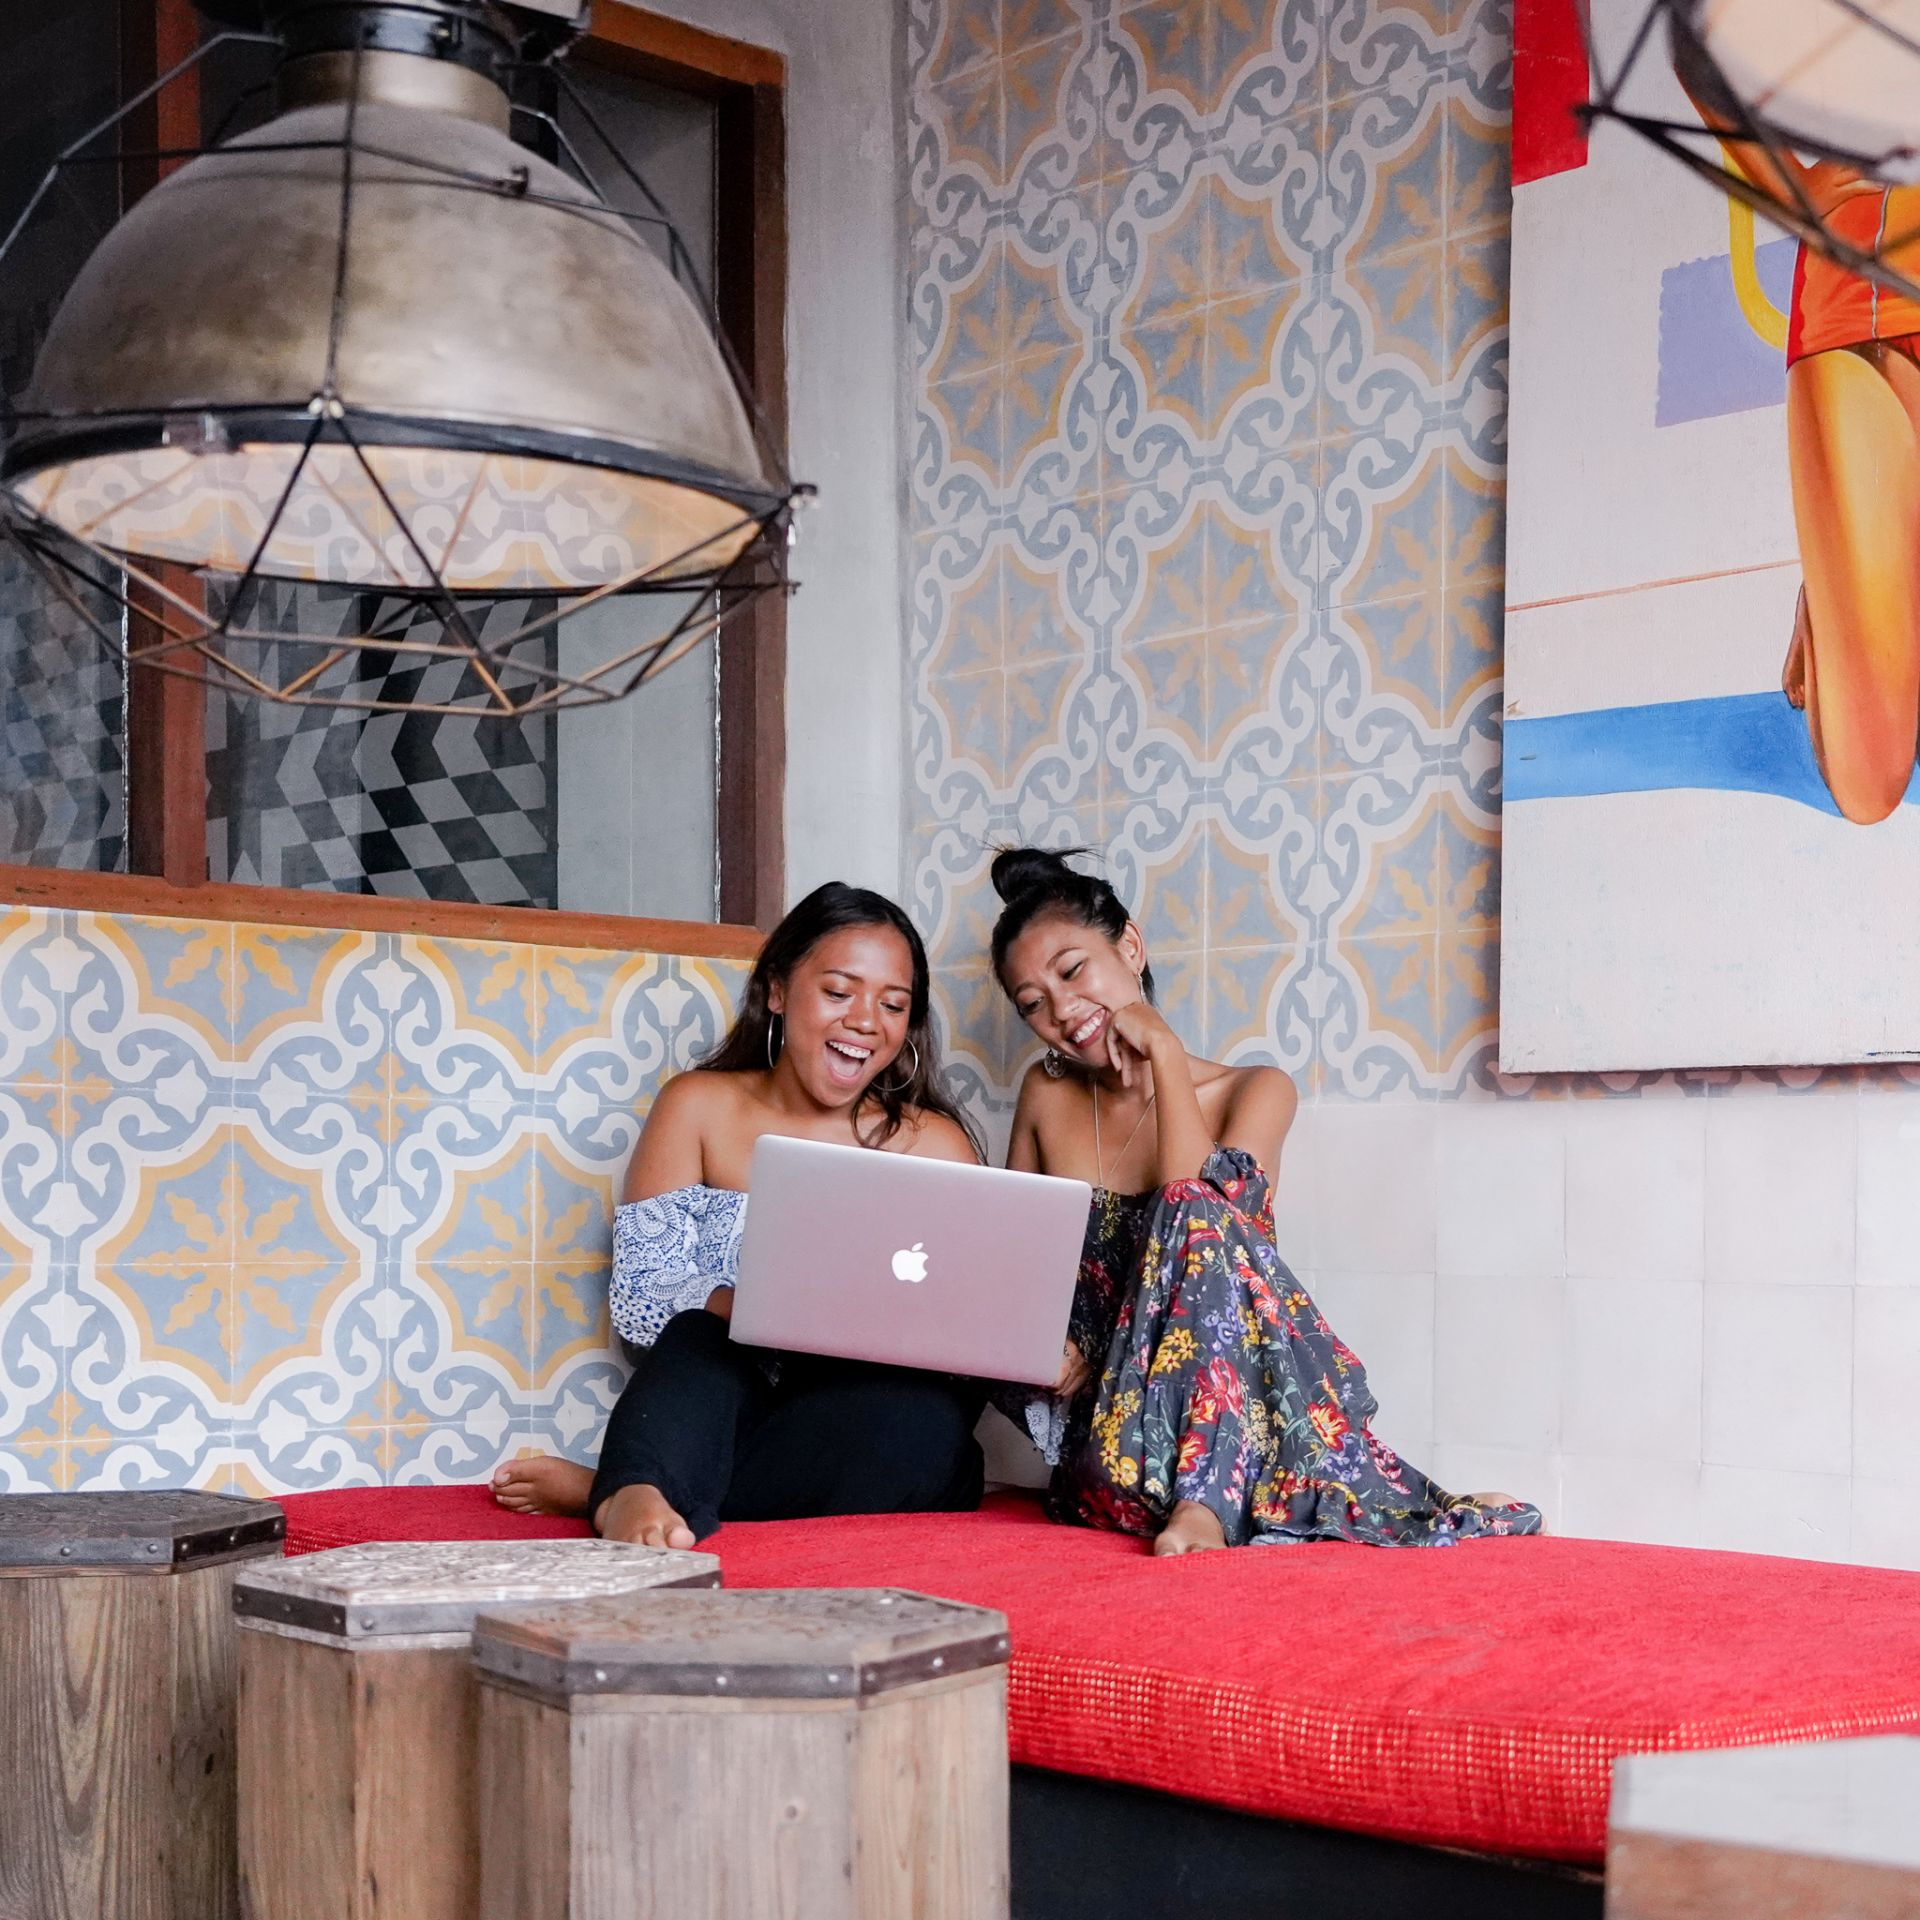 Campus Ubud Creative Co-working & Event Space, Bali